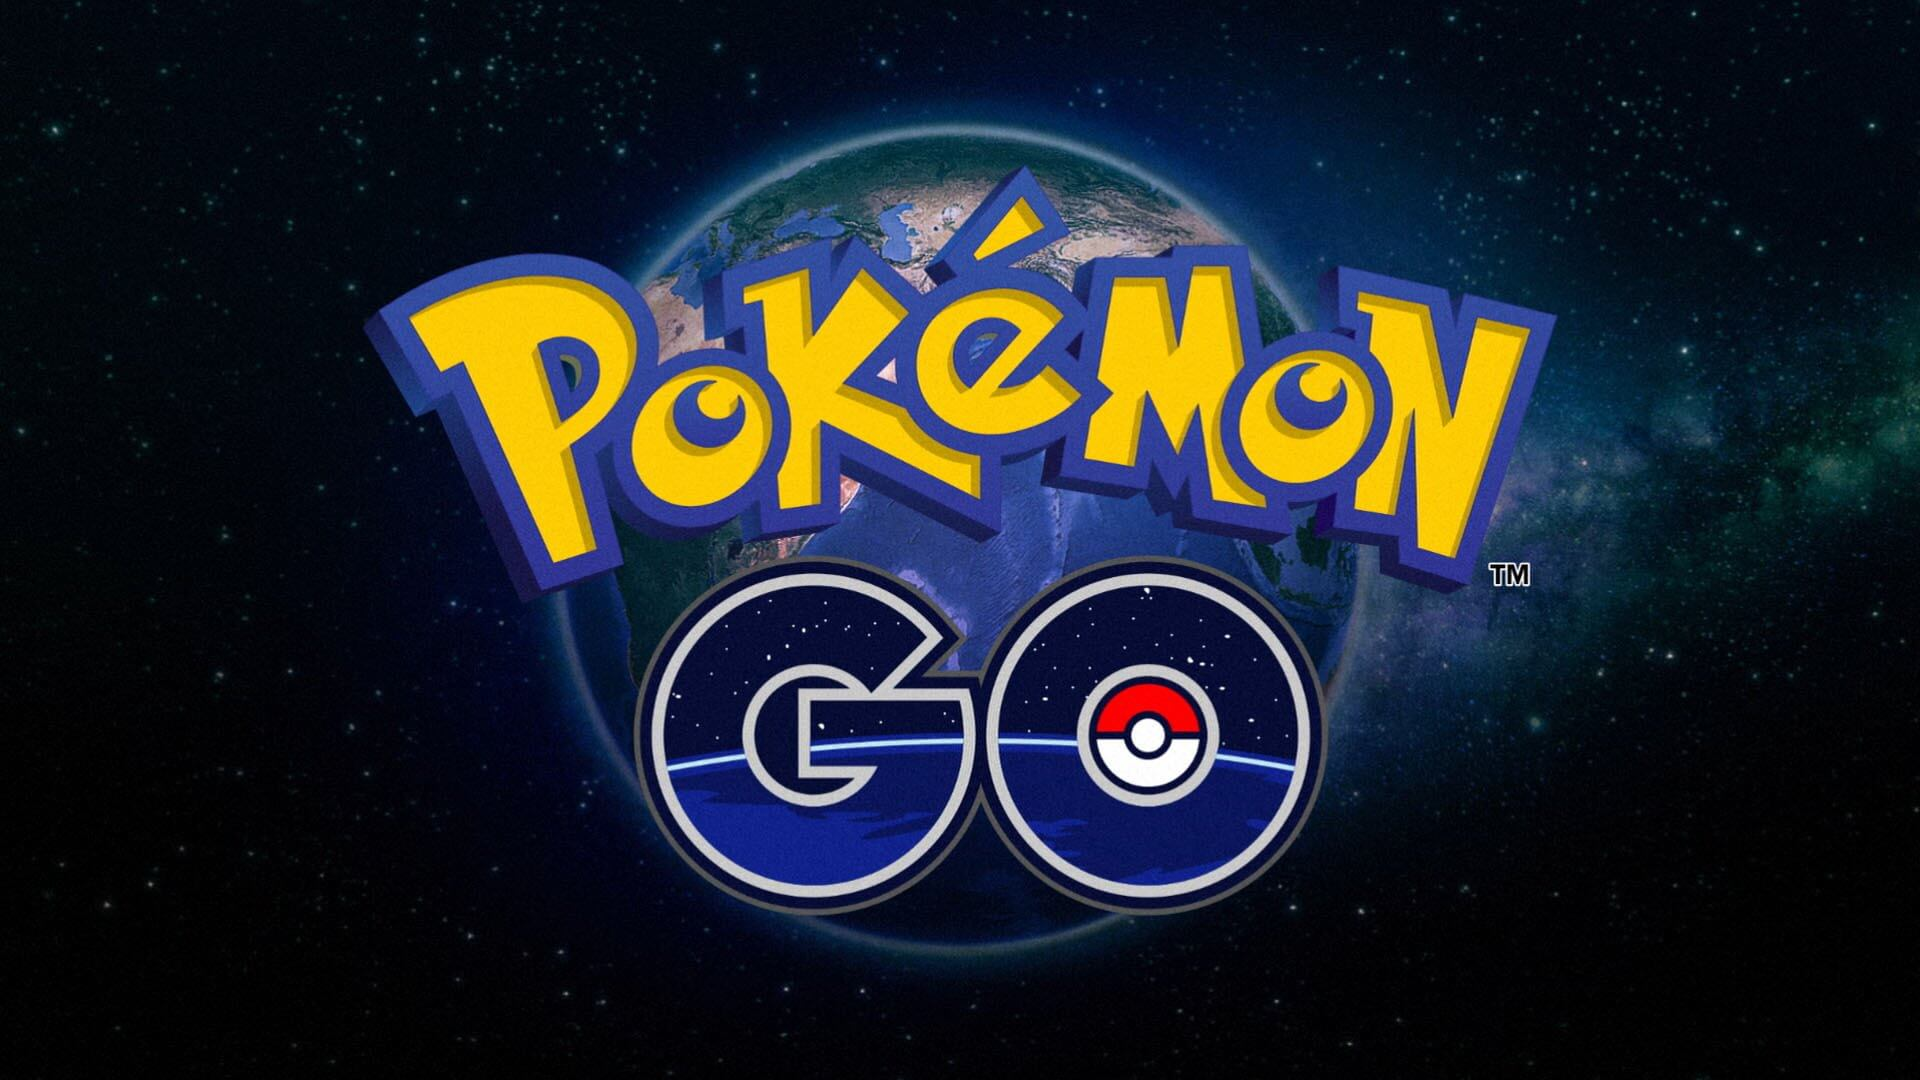 pokémon go, pokémon go Test, pokémon go Erfahrungen, pokémon go Erfahrung, pokémon go Review, pokémon go Gameplay, pokémon go map, pokémon go tipps, pokémon go download, pokémon go beta, pokémon go deutsch, pokémon go release date, pokémon go gameplay, pokémon go beta download, pokémon go server status, pokémon go plus, pokémon go release, pokémon go apk, pokémon go app, pokémon go android, pokémon go armband, pokémon go android download, pokémon go apk download, pokémon go bot, pokémon go beta deutschland, pokémon go cheats, pokémon go coins, pokémon go datum der erstveröffentlichung, pokémon go download chip, pokémon go datenvolumen, pokémon go datenverbrauch, pokémon go das spiel, pokemon go deutschland veröffentlichung, pokémon go deutschland erscheinungsdatum, pokémon go deutschland chip, pokémon go deutschland ios, pokémon go easter eggs, pokémon go evolution calculator, pokémon go fake gps, pokemon go für android, pokémon go gps hack, pokémon go gps spoof, pokémon go hack, pokémon go hack android, pokémon go iv calculator, pokémon go installieren, pokémon go ios, pokémon go japan, pokémon go july, pokémon go japan apk, pokémon go karte, pokémon go live map, pokémon go pokedex, pokémon go pikachu, pokémon go plus armband, pokémon go plus kaufen, pokémon go plus vorbestellen, pokémon go preis, pokémon go play store, pokémon go server, pokémon go spielen, pokémon go teams, pokémon go tricks, pokémon go windows phone, pokémon go wiki, pokémon go wikipedia, pokémon go wann kommt es raus, pokémon go youtube, pokémon go zendesk, pokémon go 2016